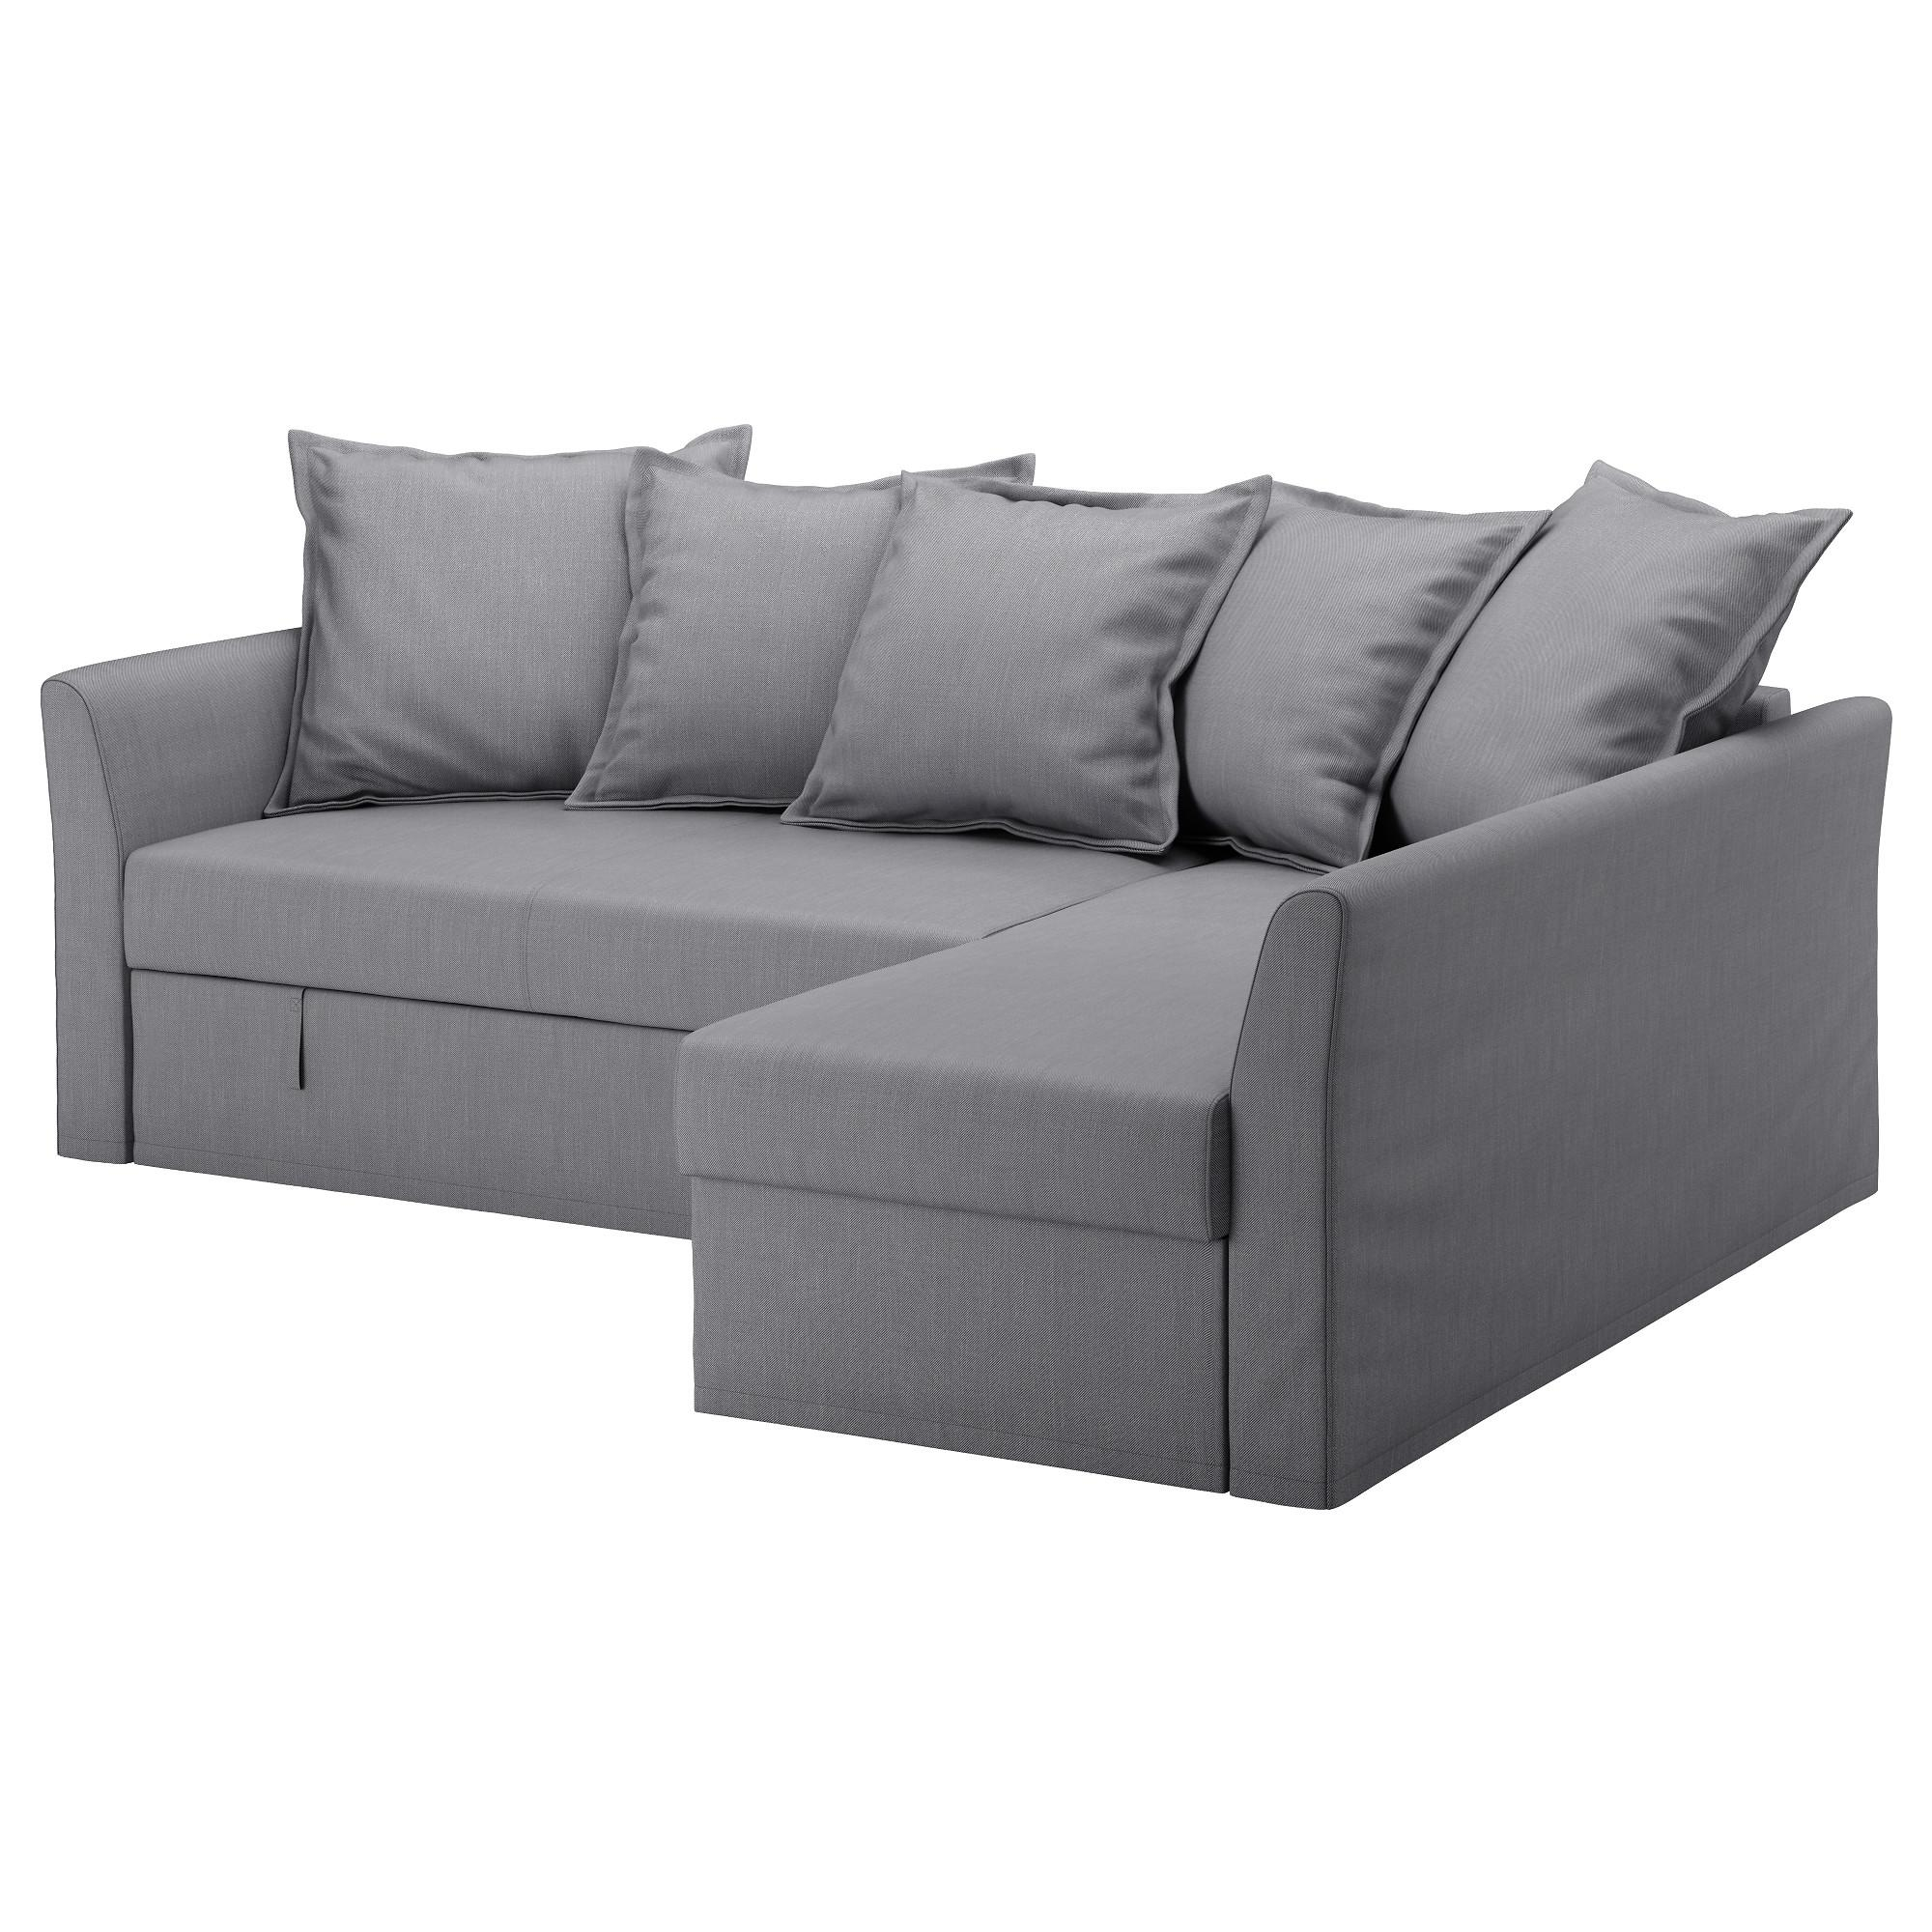 Holmsund Cover For Sleeper Sectional, 3 Seat – Nordvalla Medium With Storage Sofa Ikea (View 10 of 20)